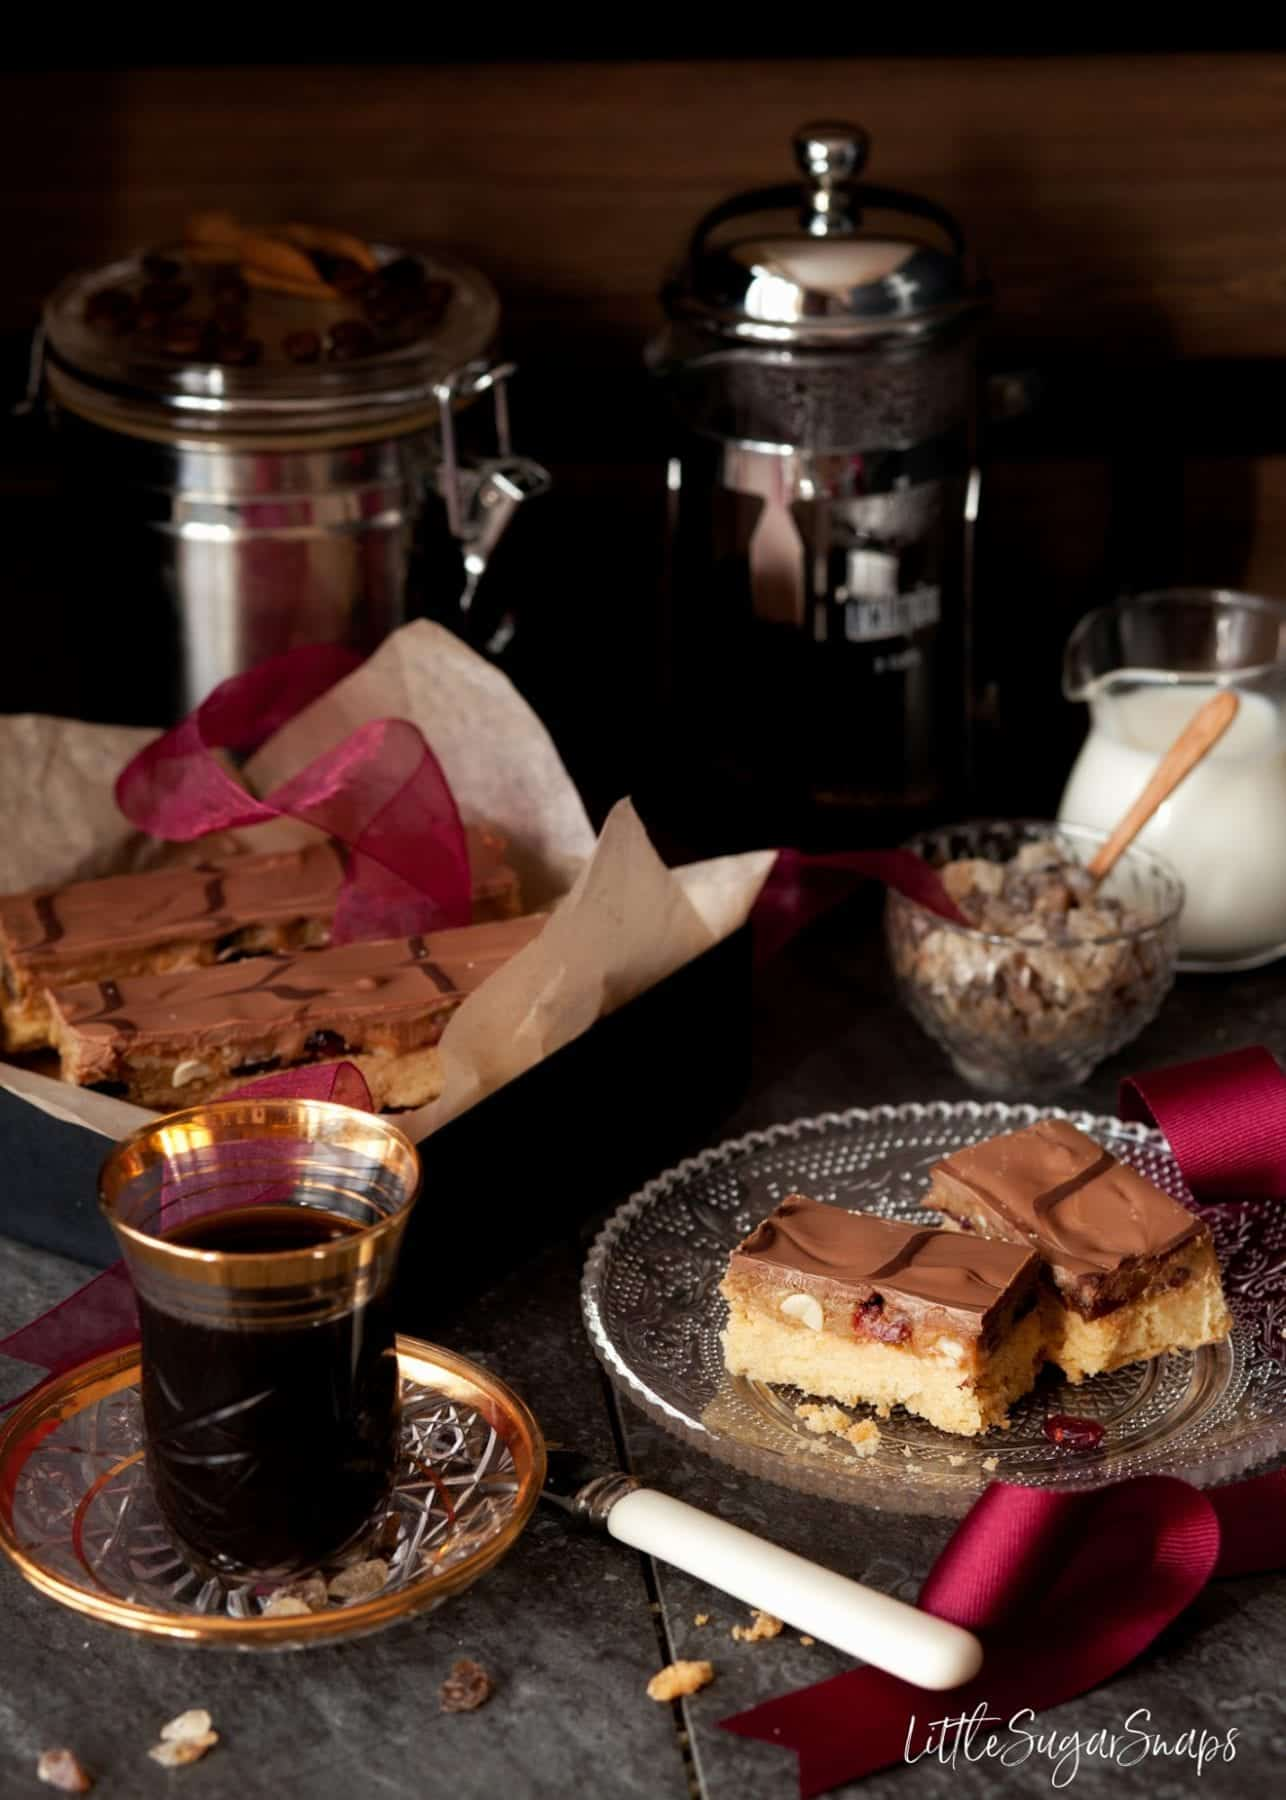 Caramel Shortbread with fried cranberries and nuts. Cafetiere of coffee in the shot with cream and sugar